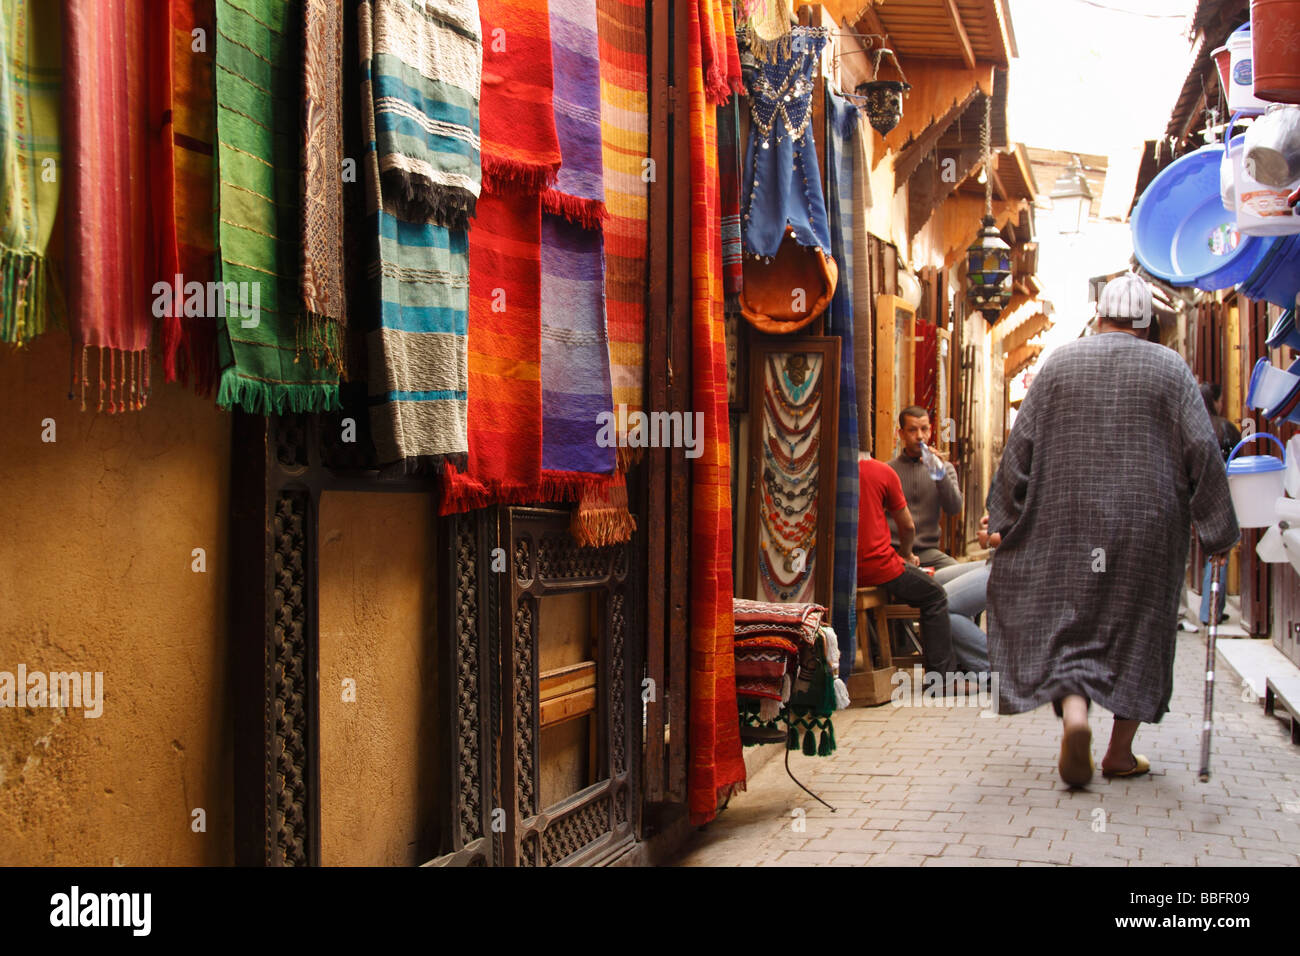 Africa, North Africa, Morocco, Fes, Fès el Bali, Old Fes, Medina, Old Town Alleyway, Shopping Stock Photo